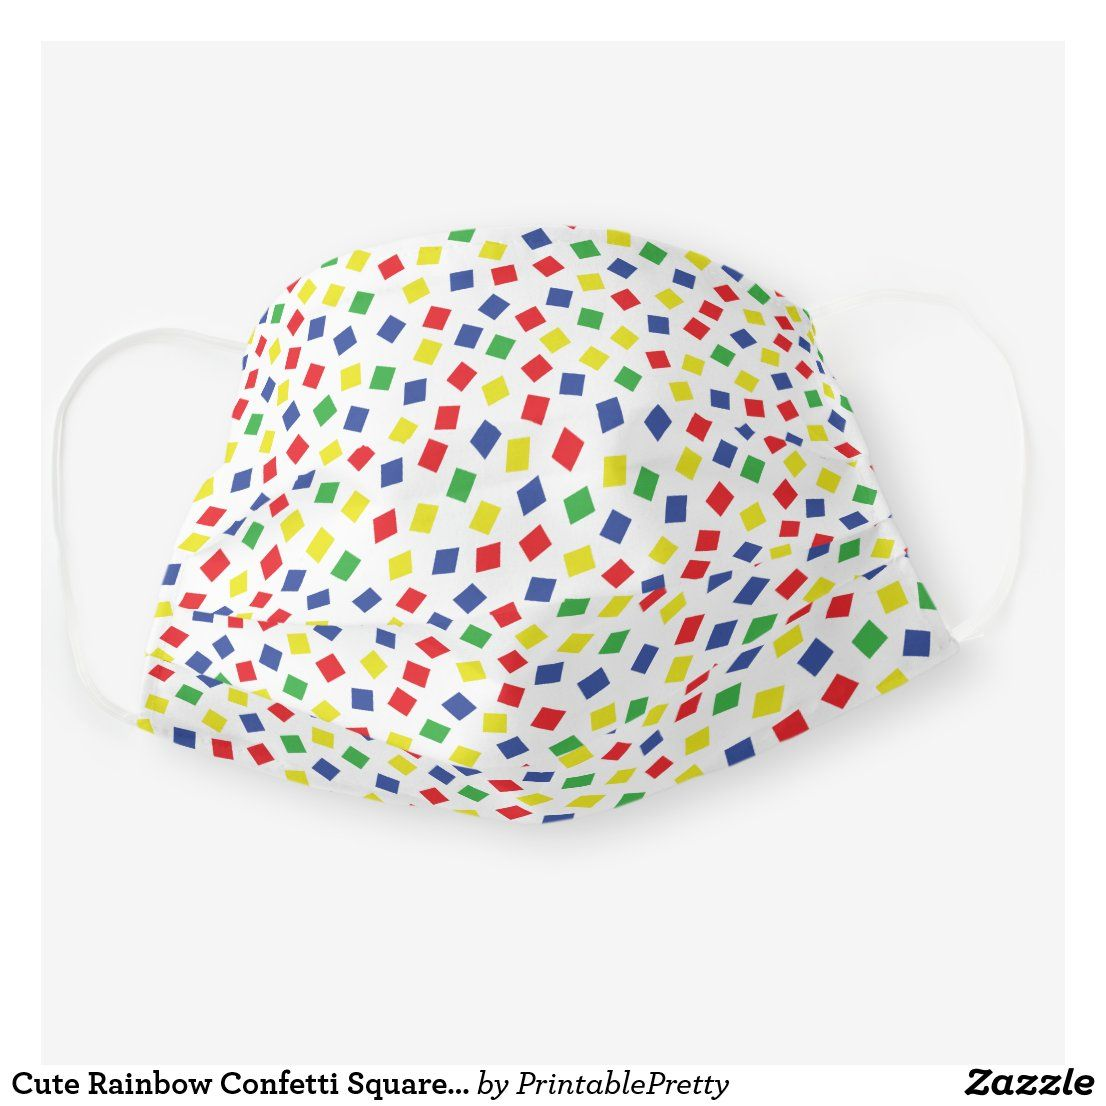 Cute Rainbow Confetti Square Sprinkles Cloth Face Mask | Zazzle.com #confettisquares